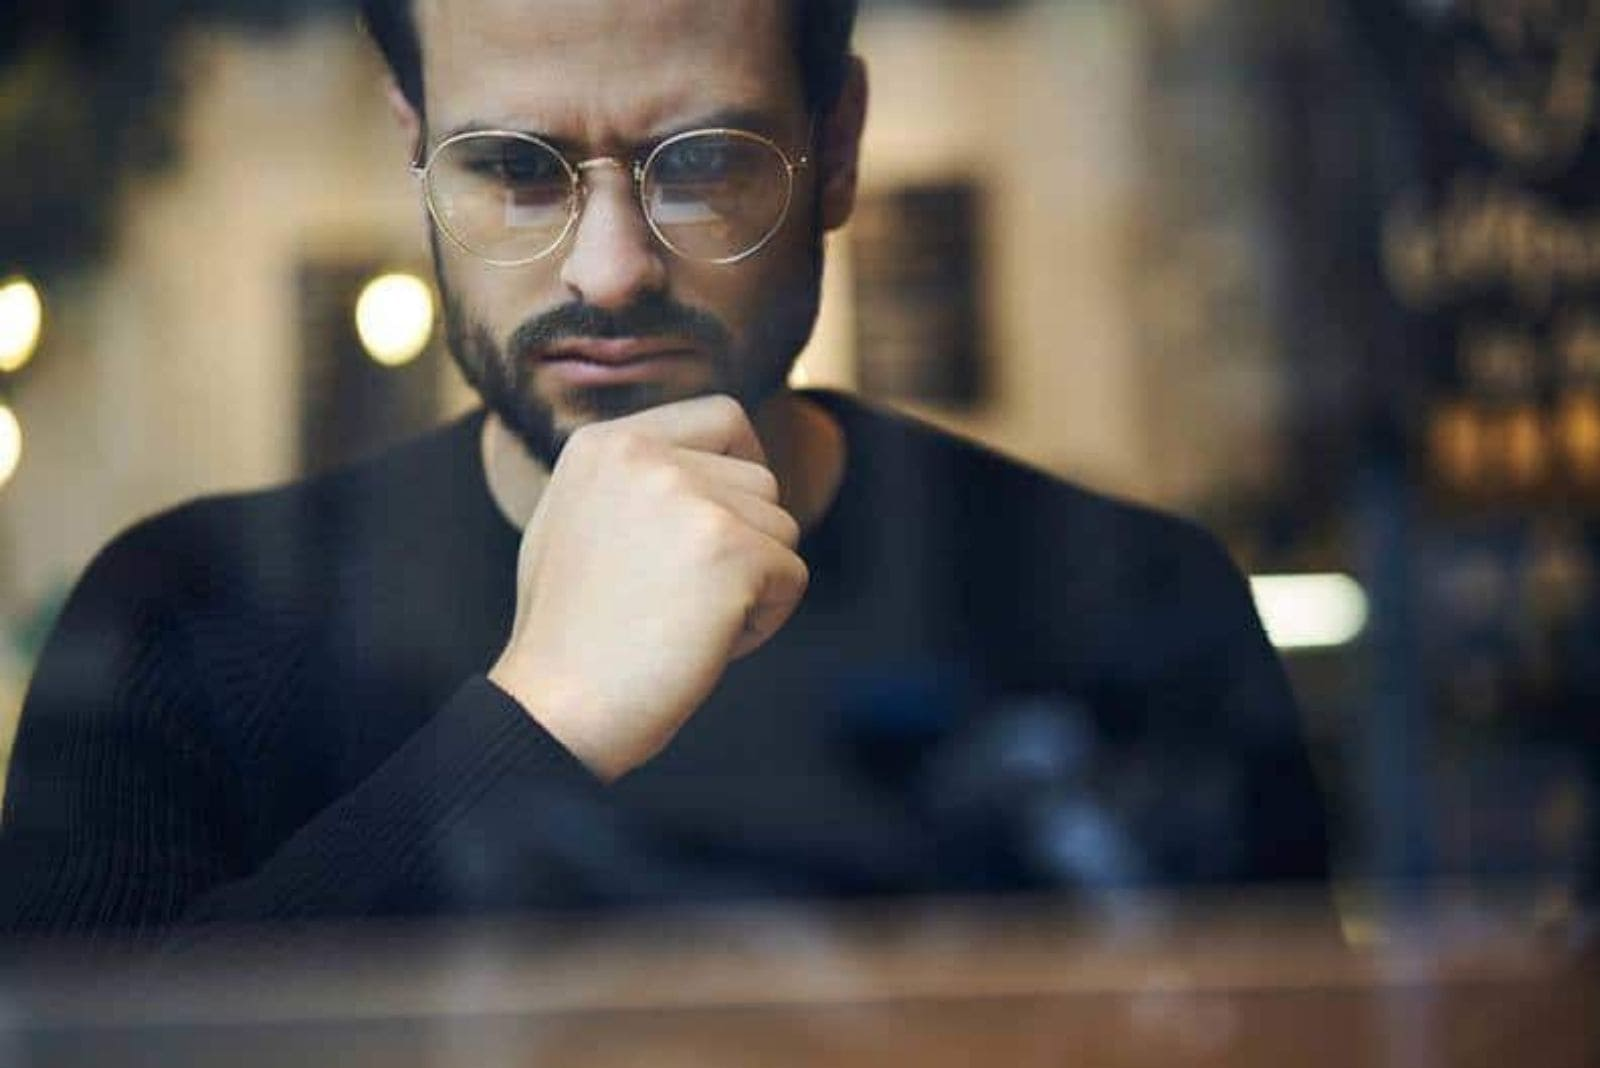 bearded man with glasses looking worried